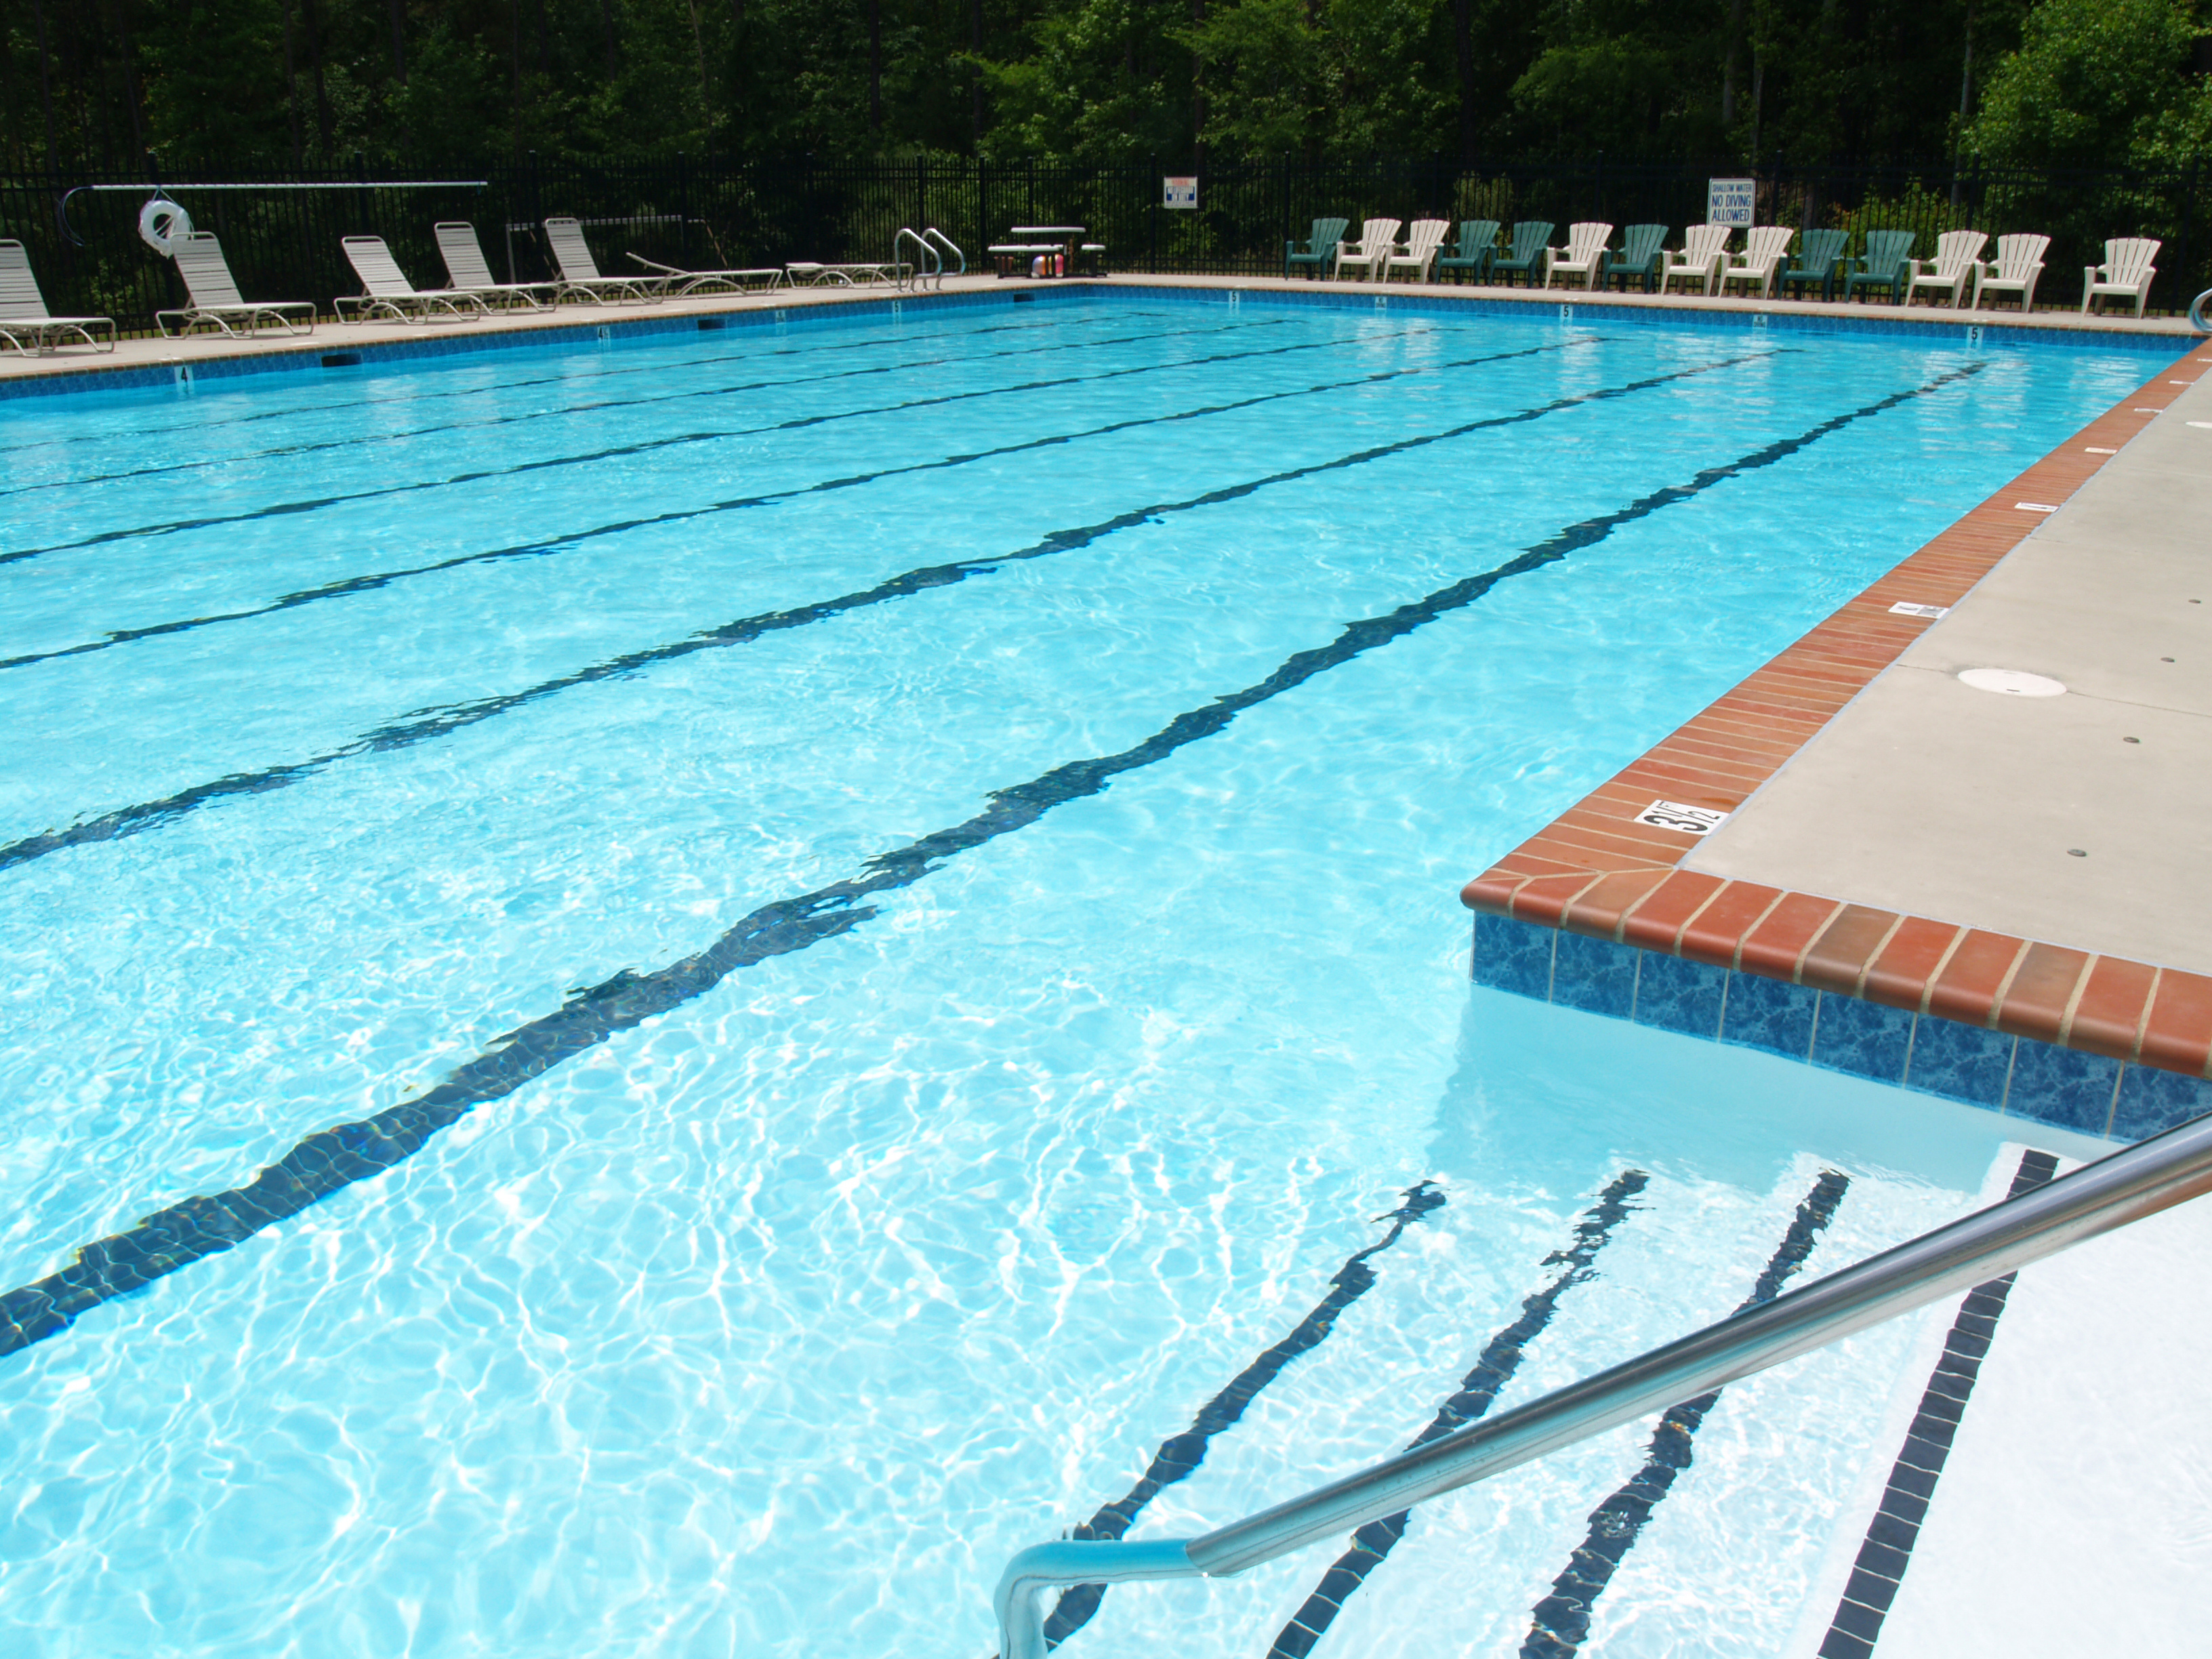 The Ultimate Amenity - Pool Rules and Challenges in your Community Association